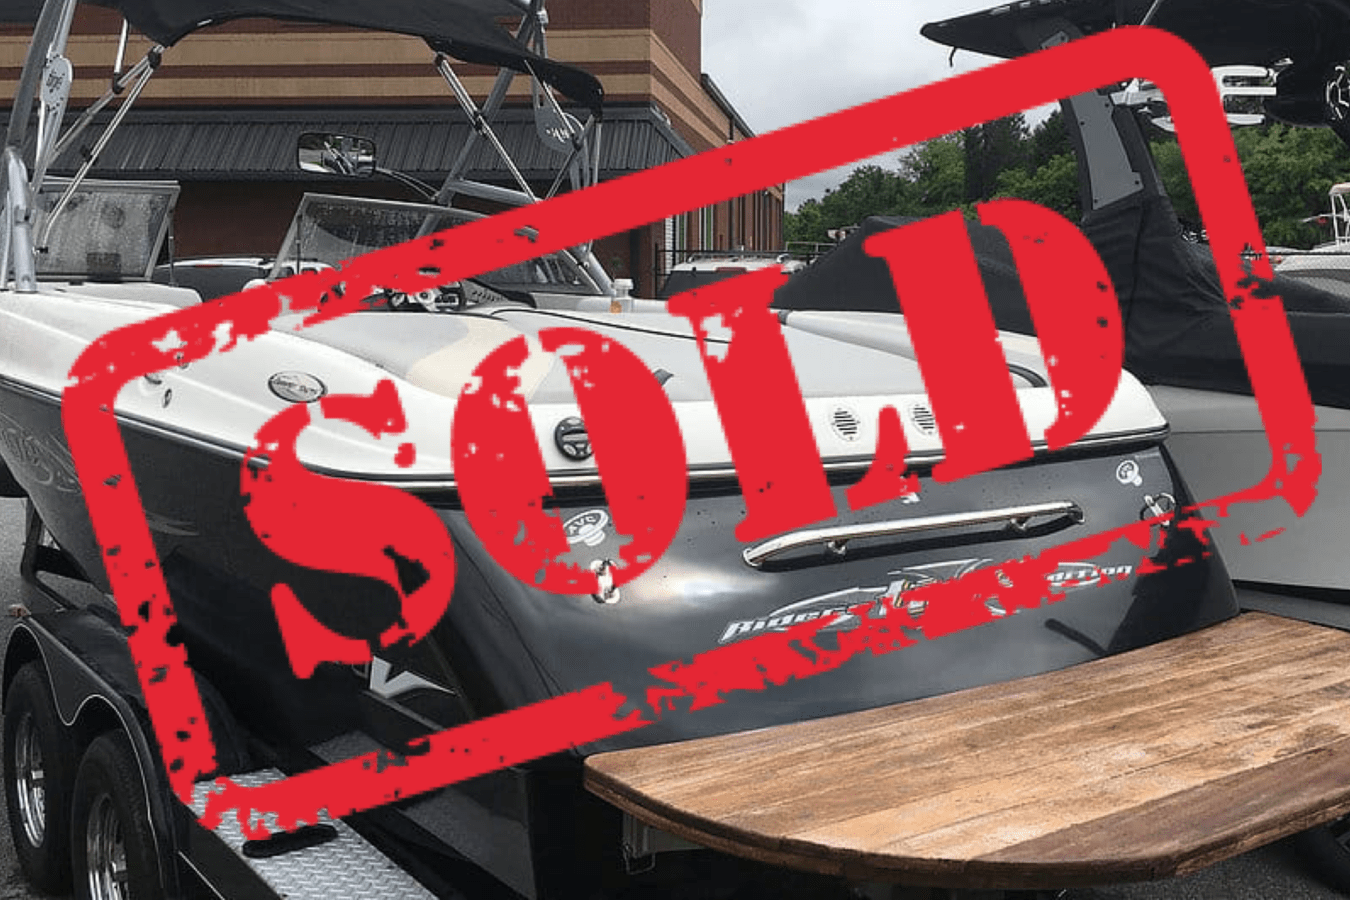 USED 2005 Tige 24V - PULL Watersports